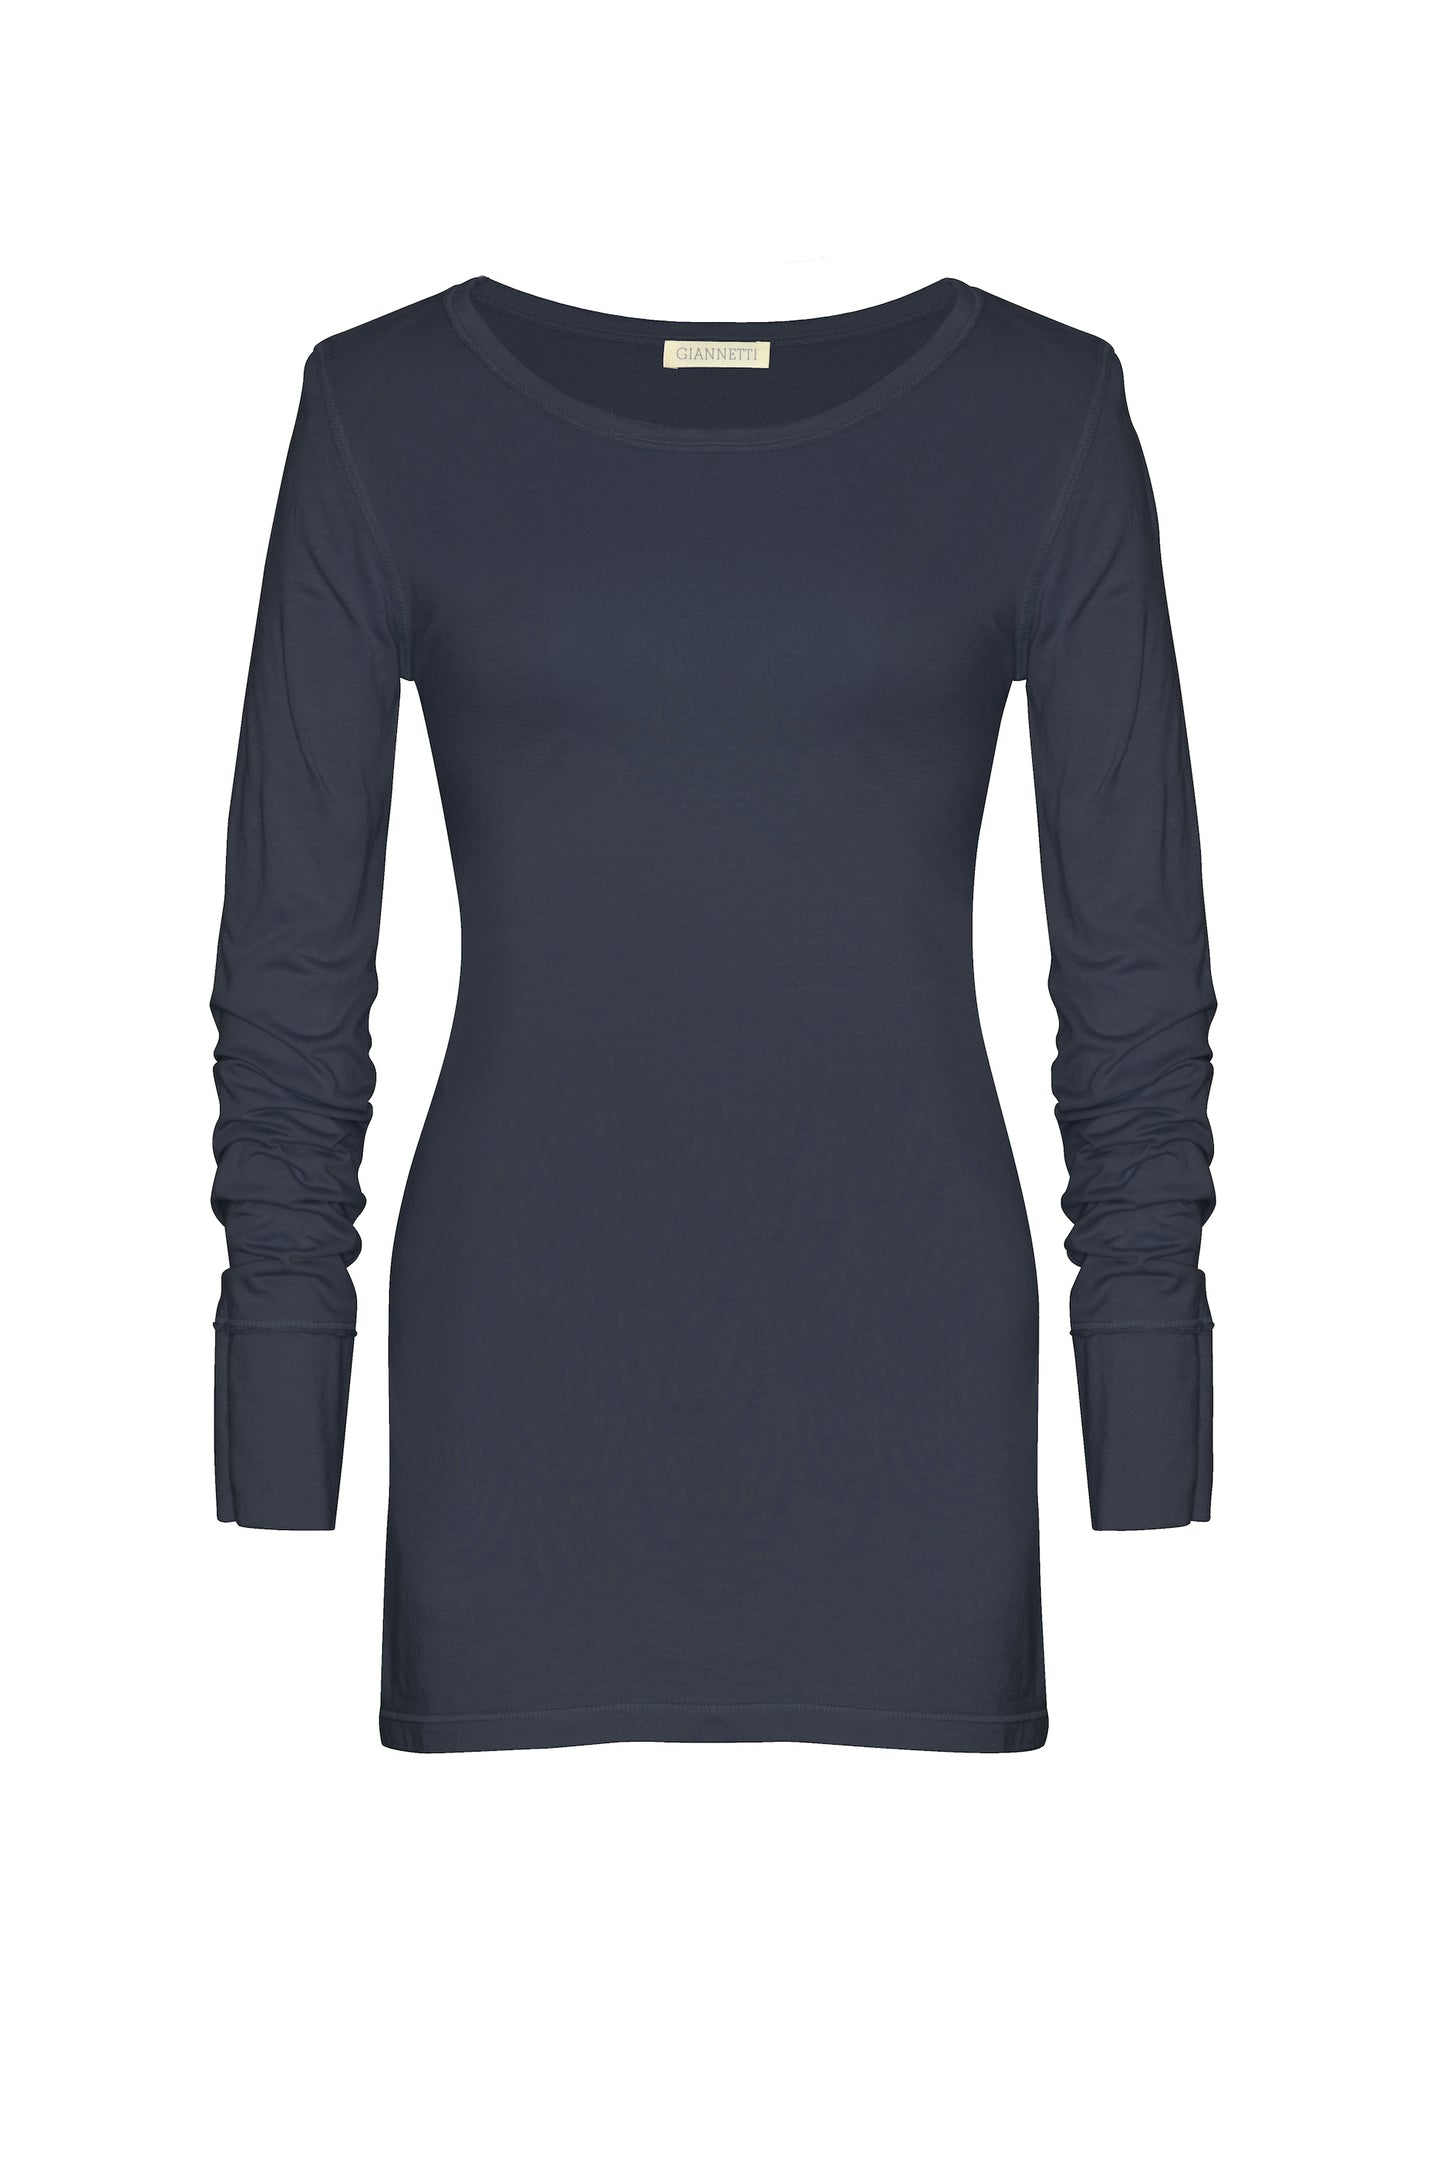 GIANNETTI INDIGO LONG SLEEVE TEE SHIRT